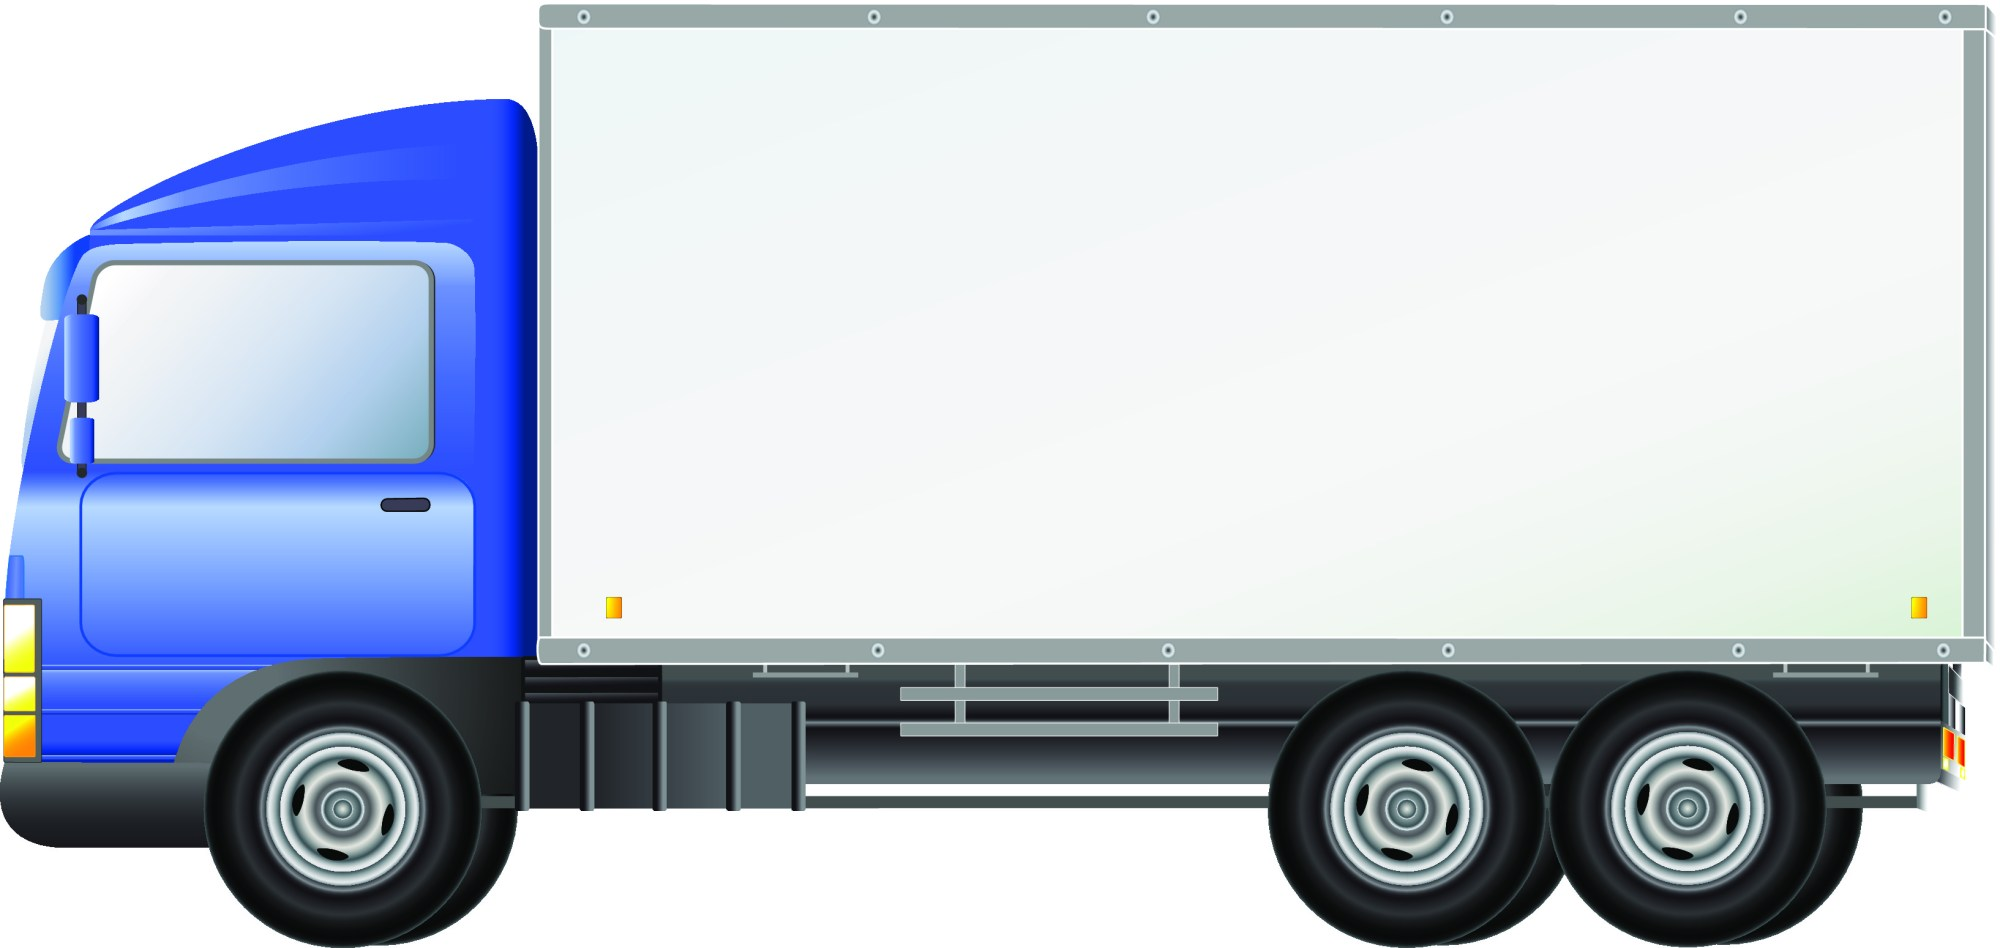 hight resolution of delivery truck images clipart delivery truck clipart